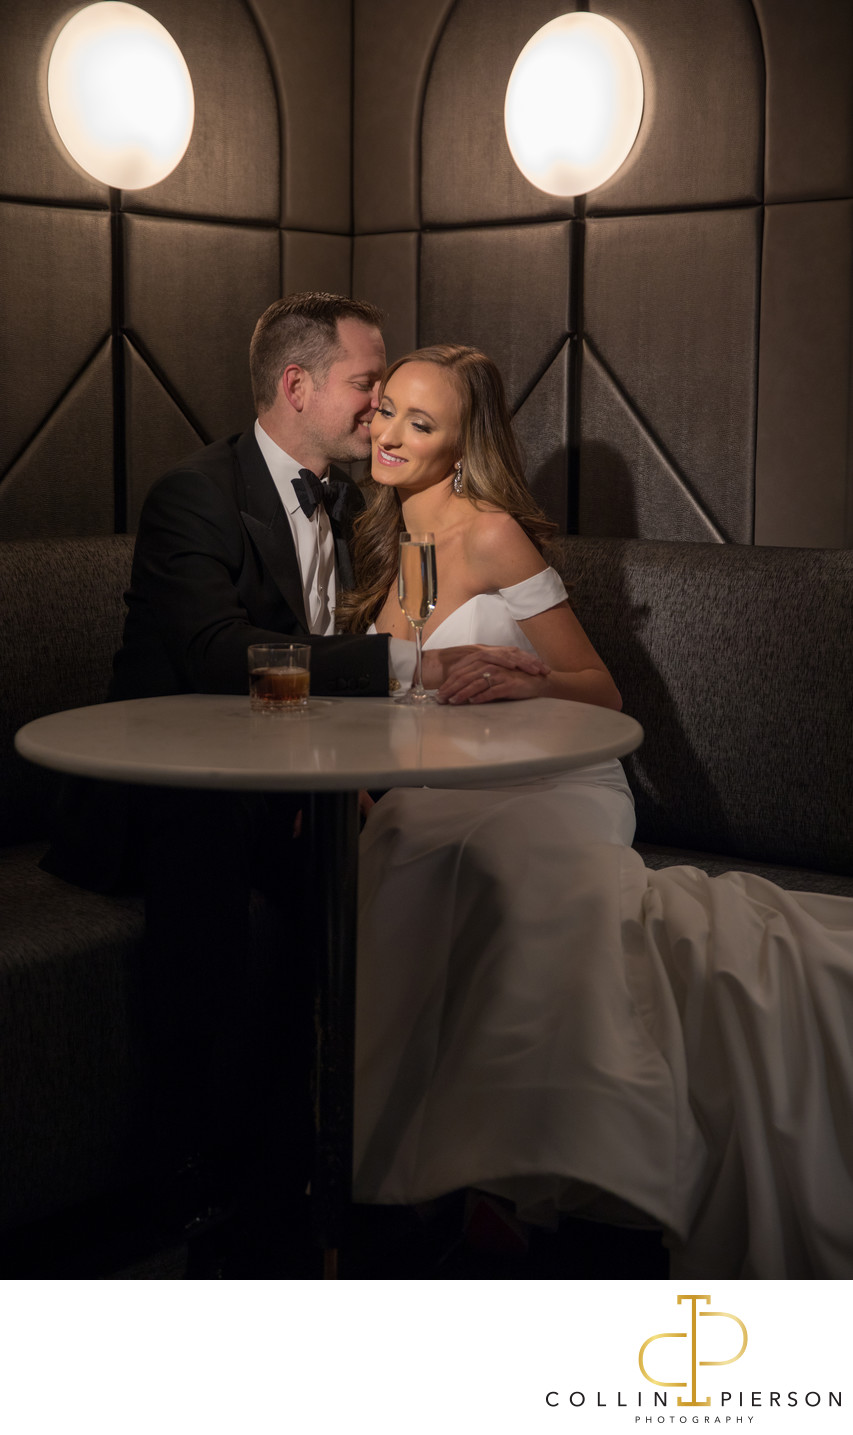 Dana & Ben's LondonHouse Hotel Chicago Wedding